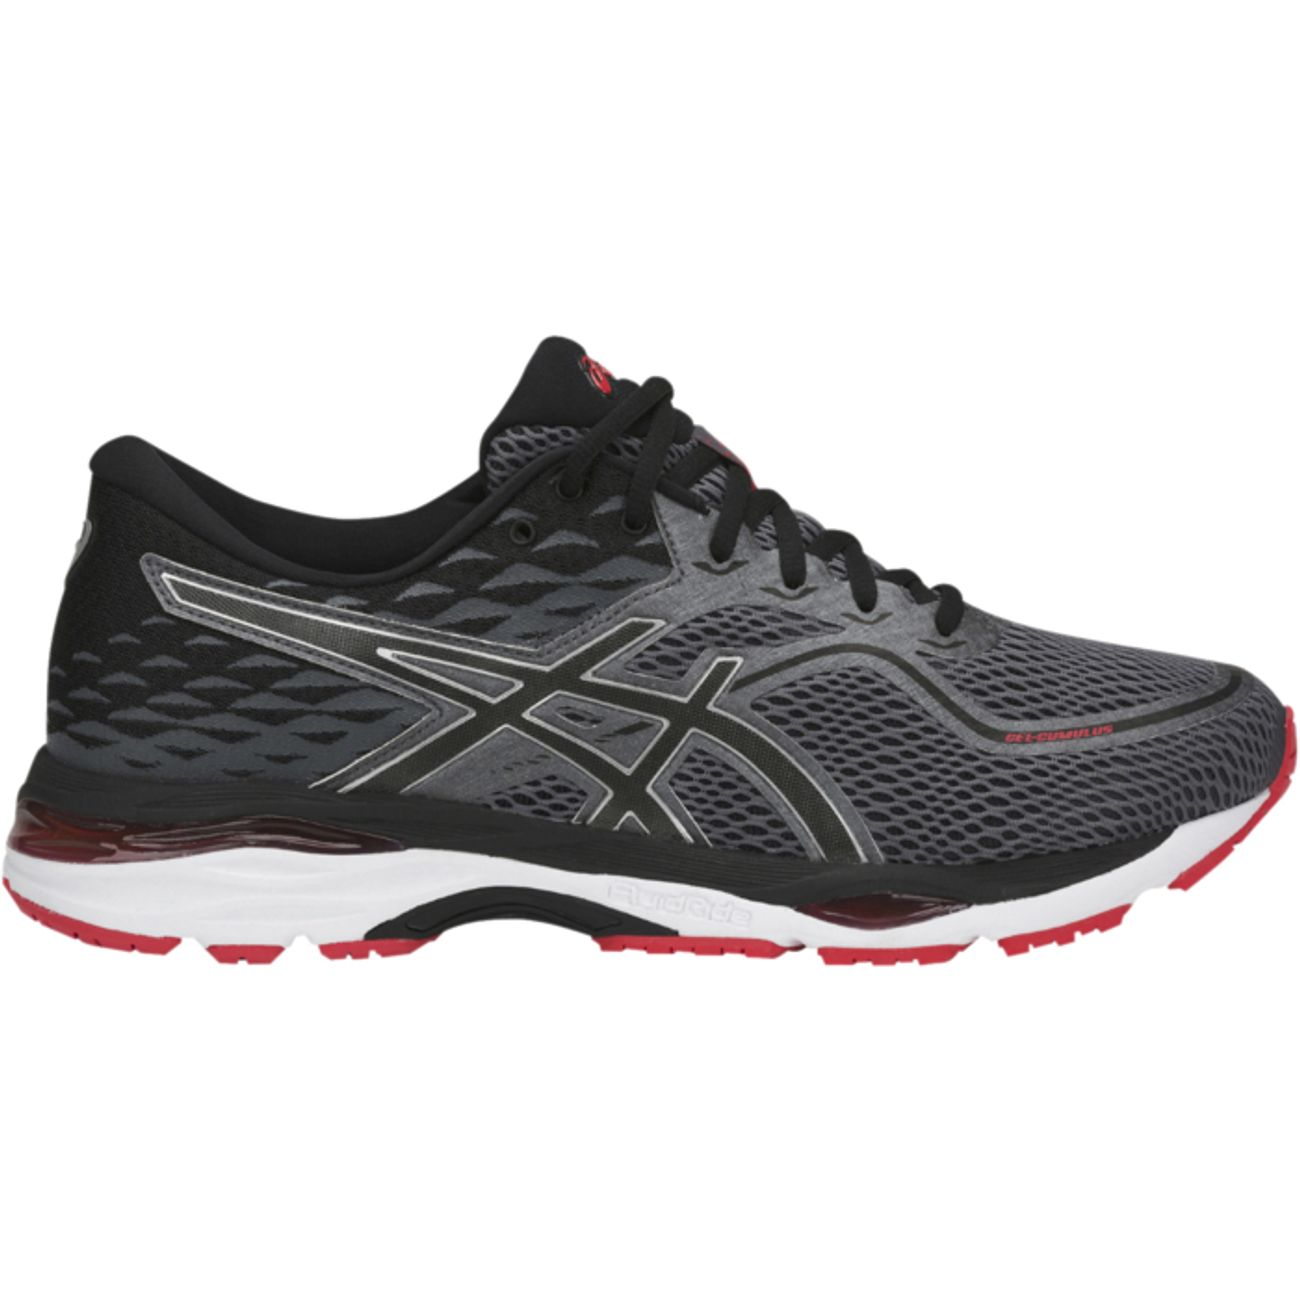 CHAUSSURES BASSES running homme ASICS BTE GEL CUMULUS M